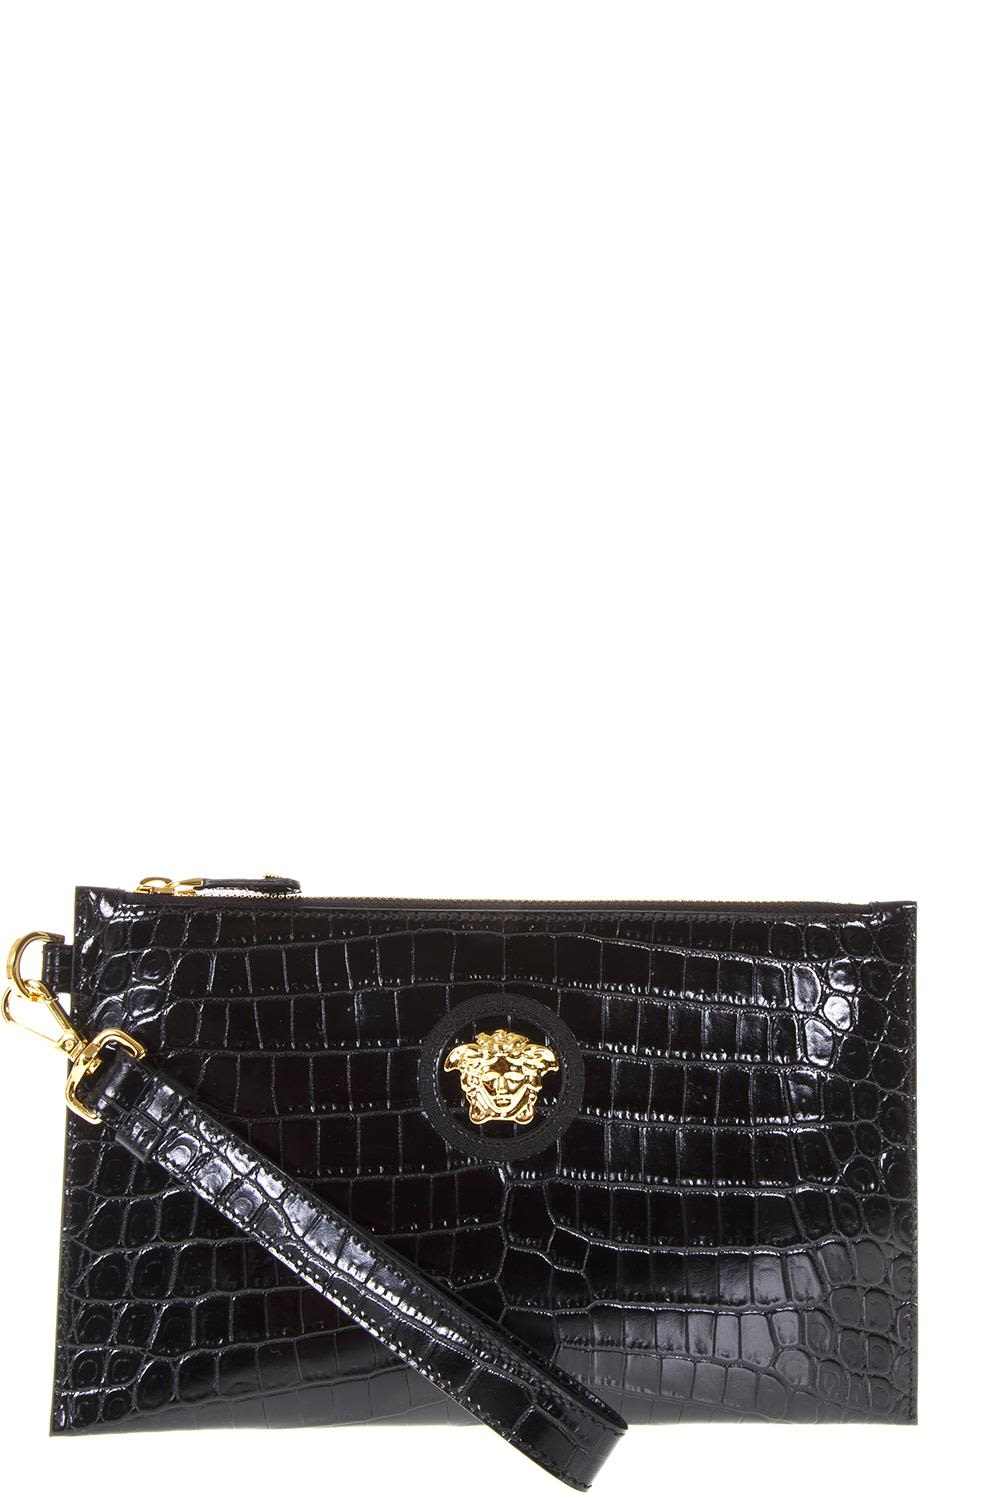 VERSACE BLACK LEATHER BAG PYTHONITE